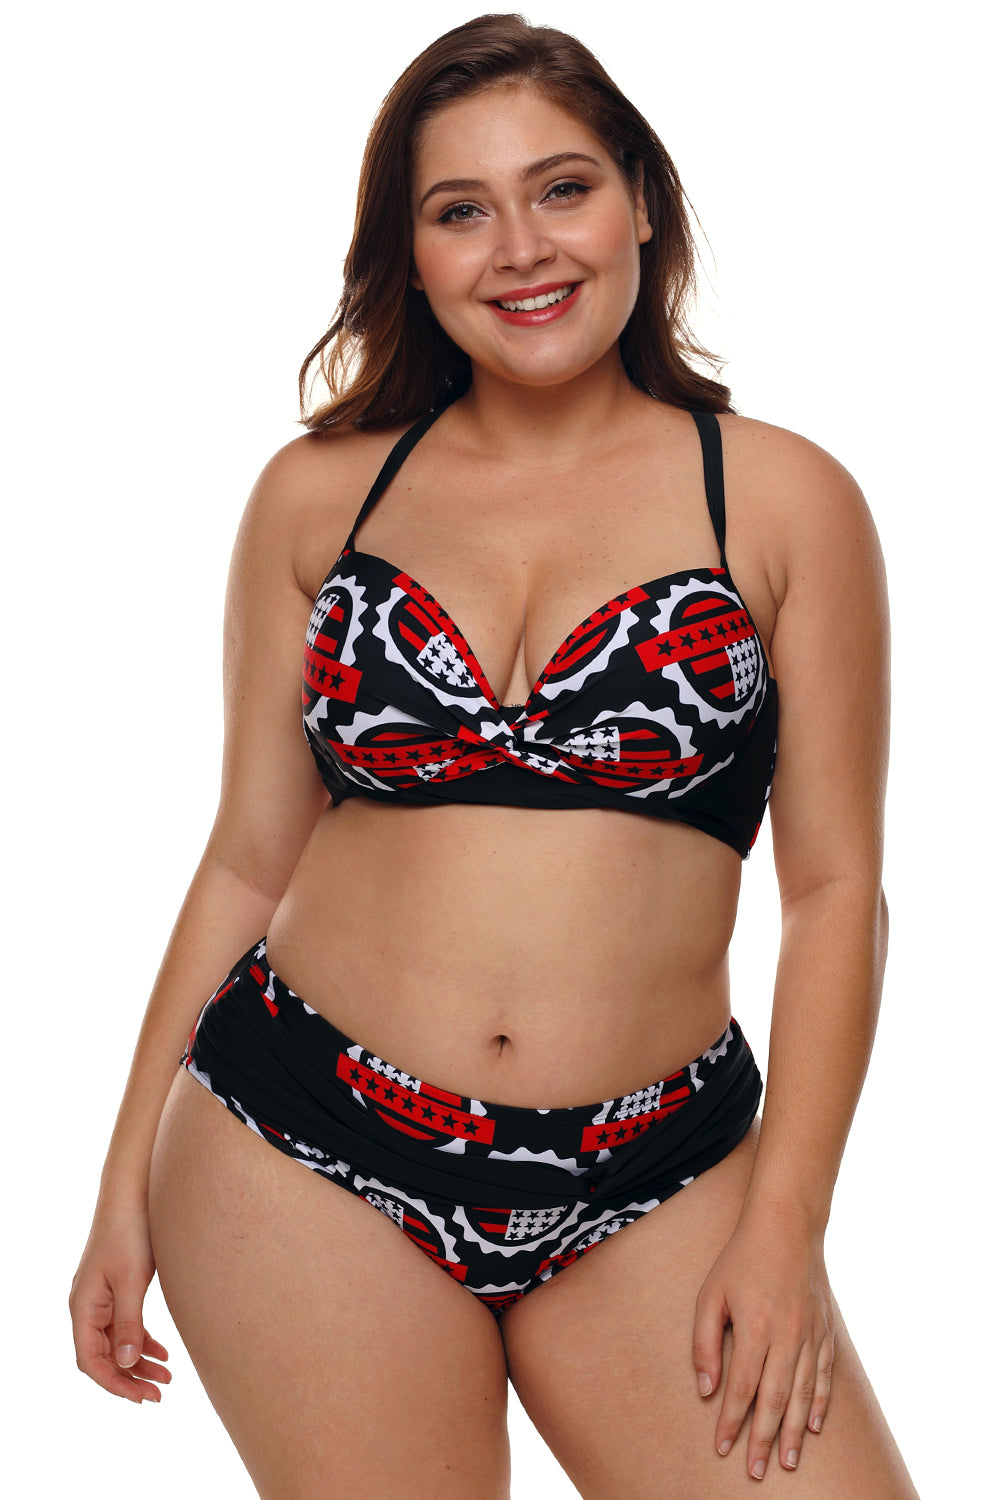 Plus Size Stars Print Pleated Bikini Swimsuit LAVELIQ - Laveliqus